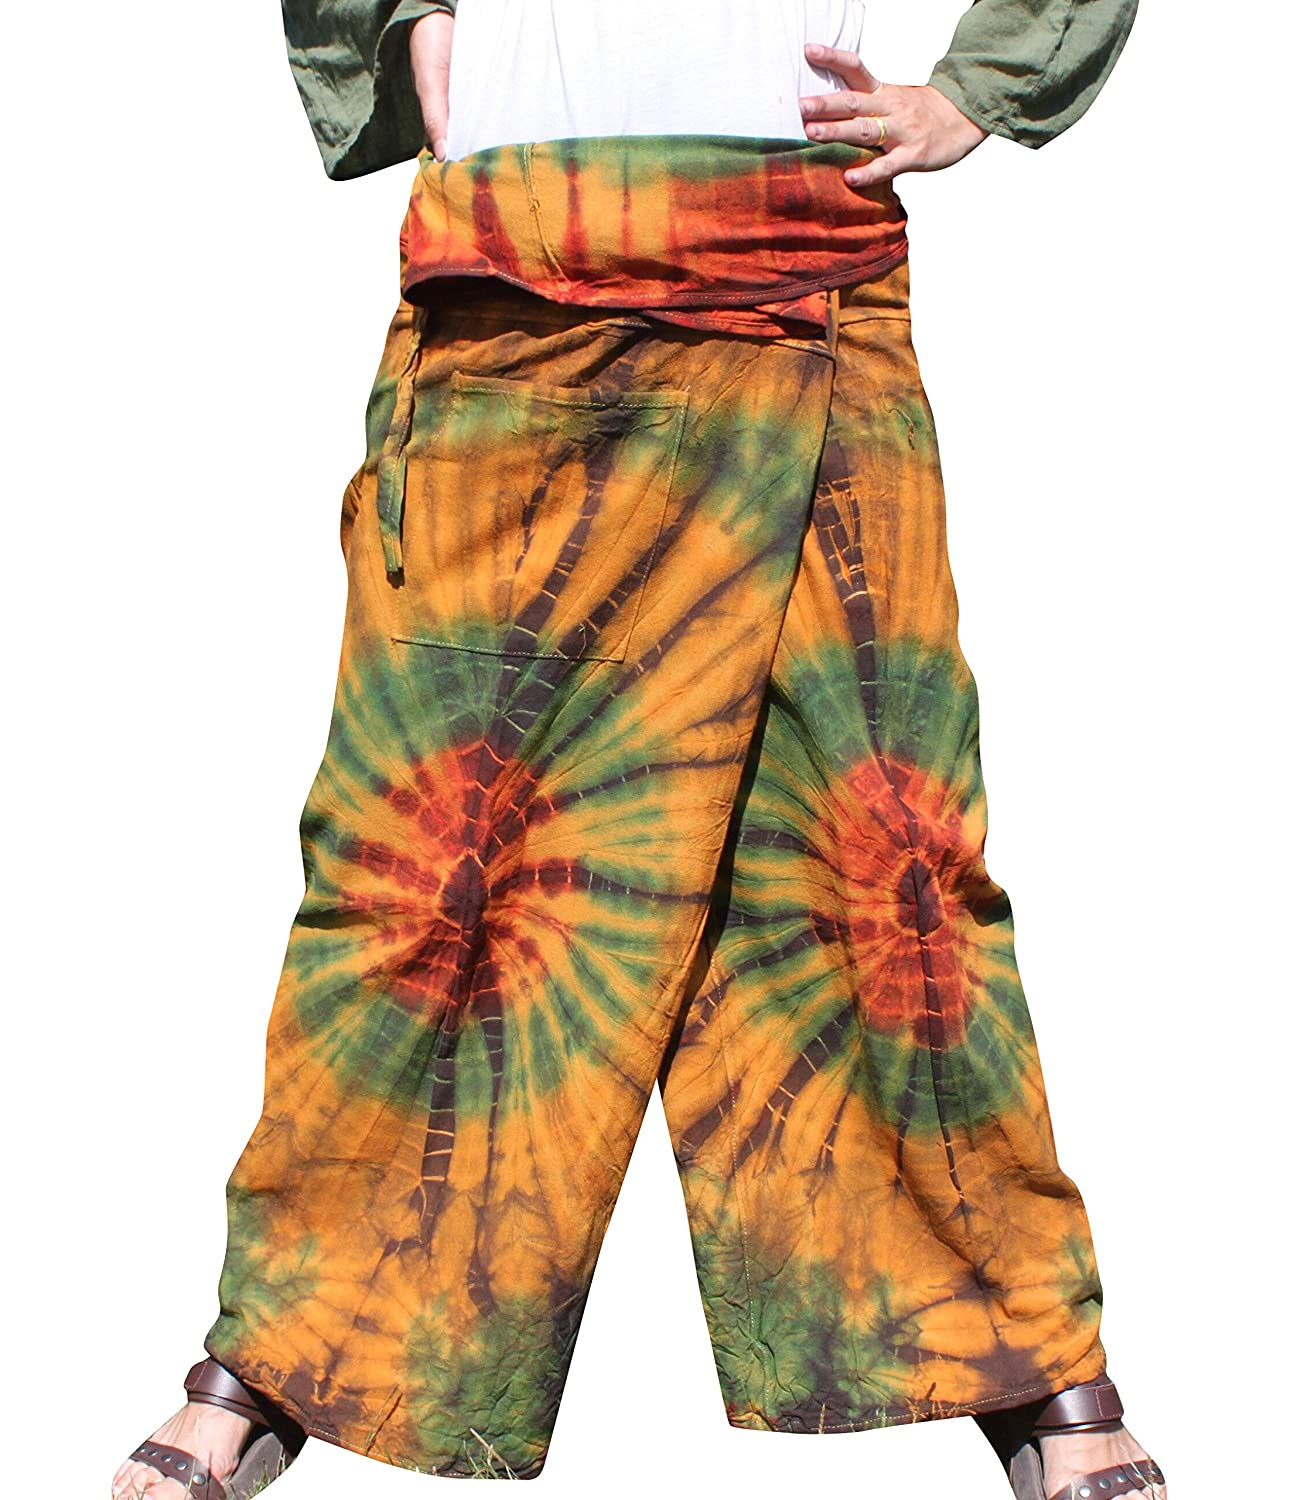 Yellow Green Brown RaanPahMuang Thick Muang Cotton Thai Fishermans Pants Vibrant TieDyed Tie Dye